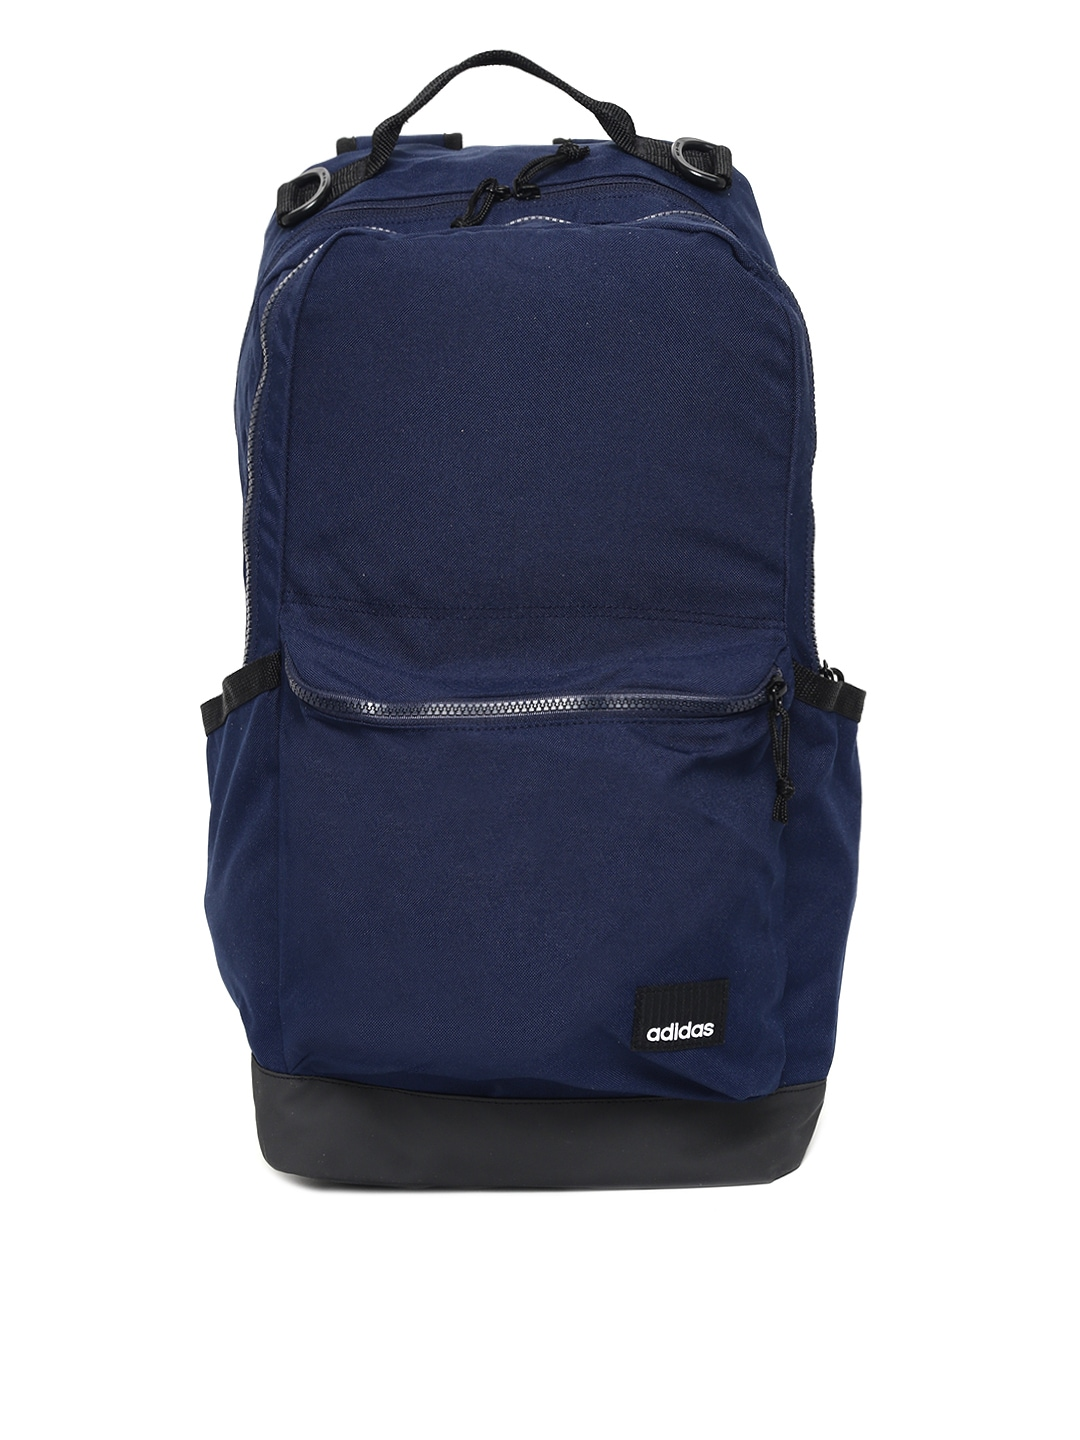 93354a9584 Adidas Men Backpacks Bags - Buy Adidas Men Backpacks Bags online in India